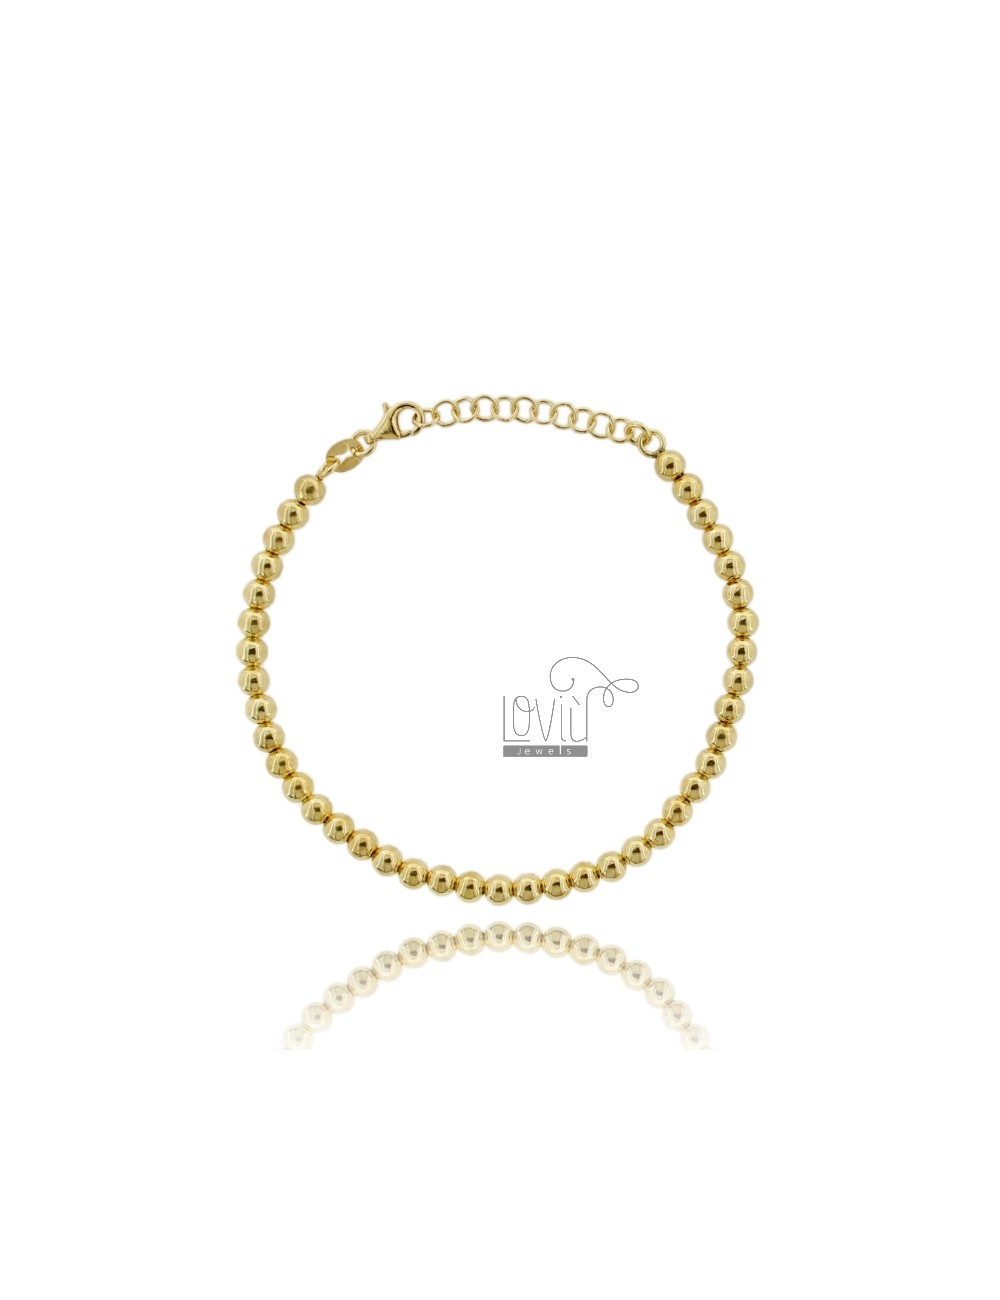 BRACELET BALL 4 MM SILVER GOLD PLATED 925 ‰ WITH CLOSURE